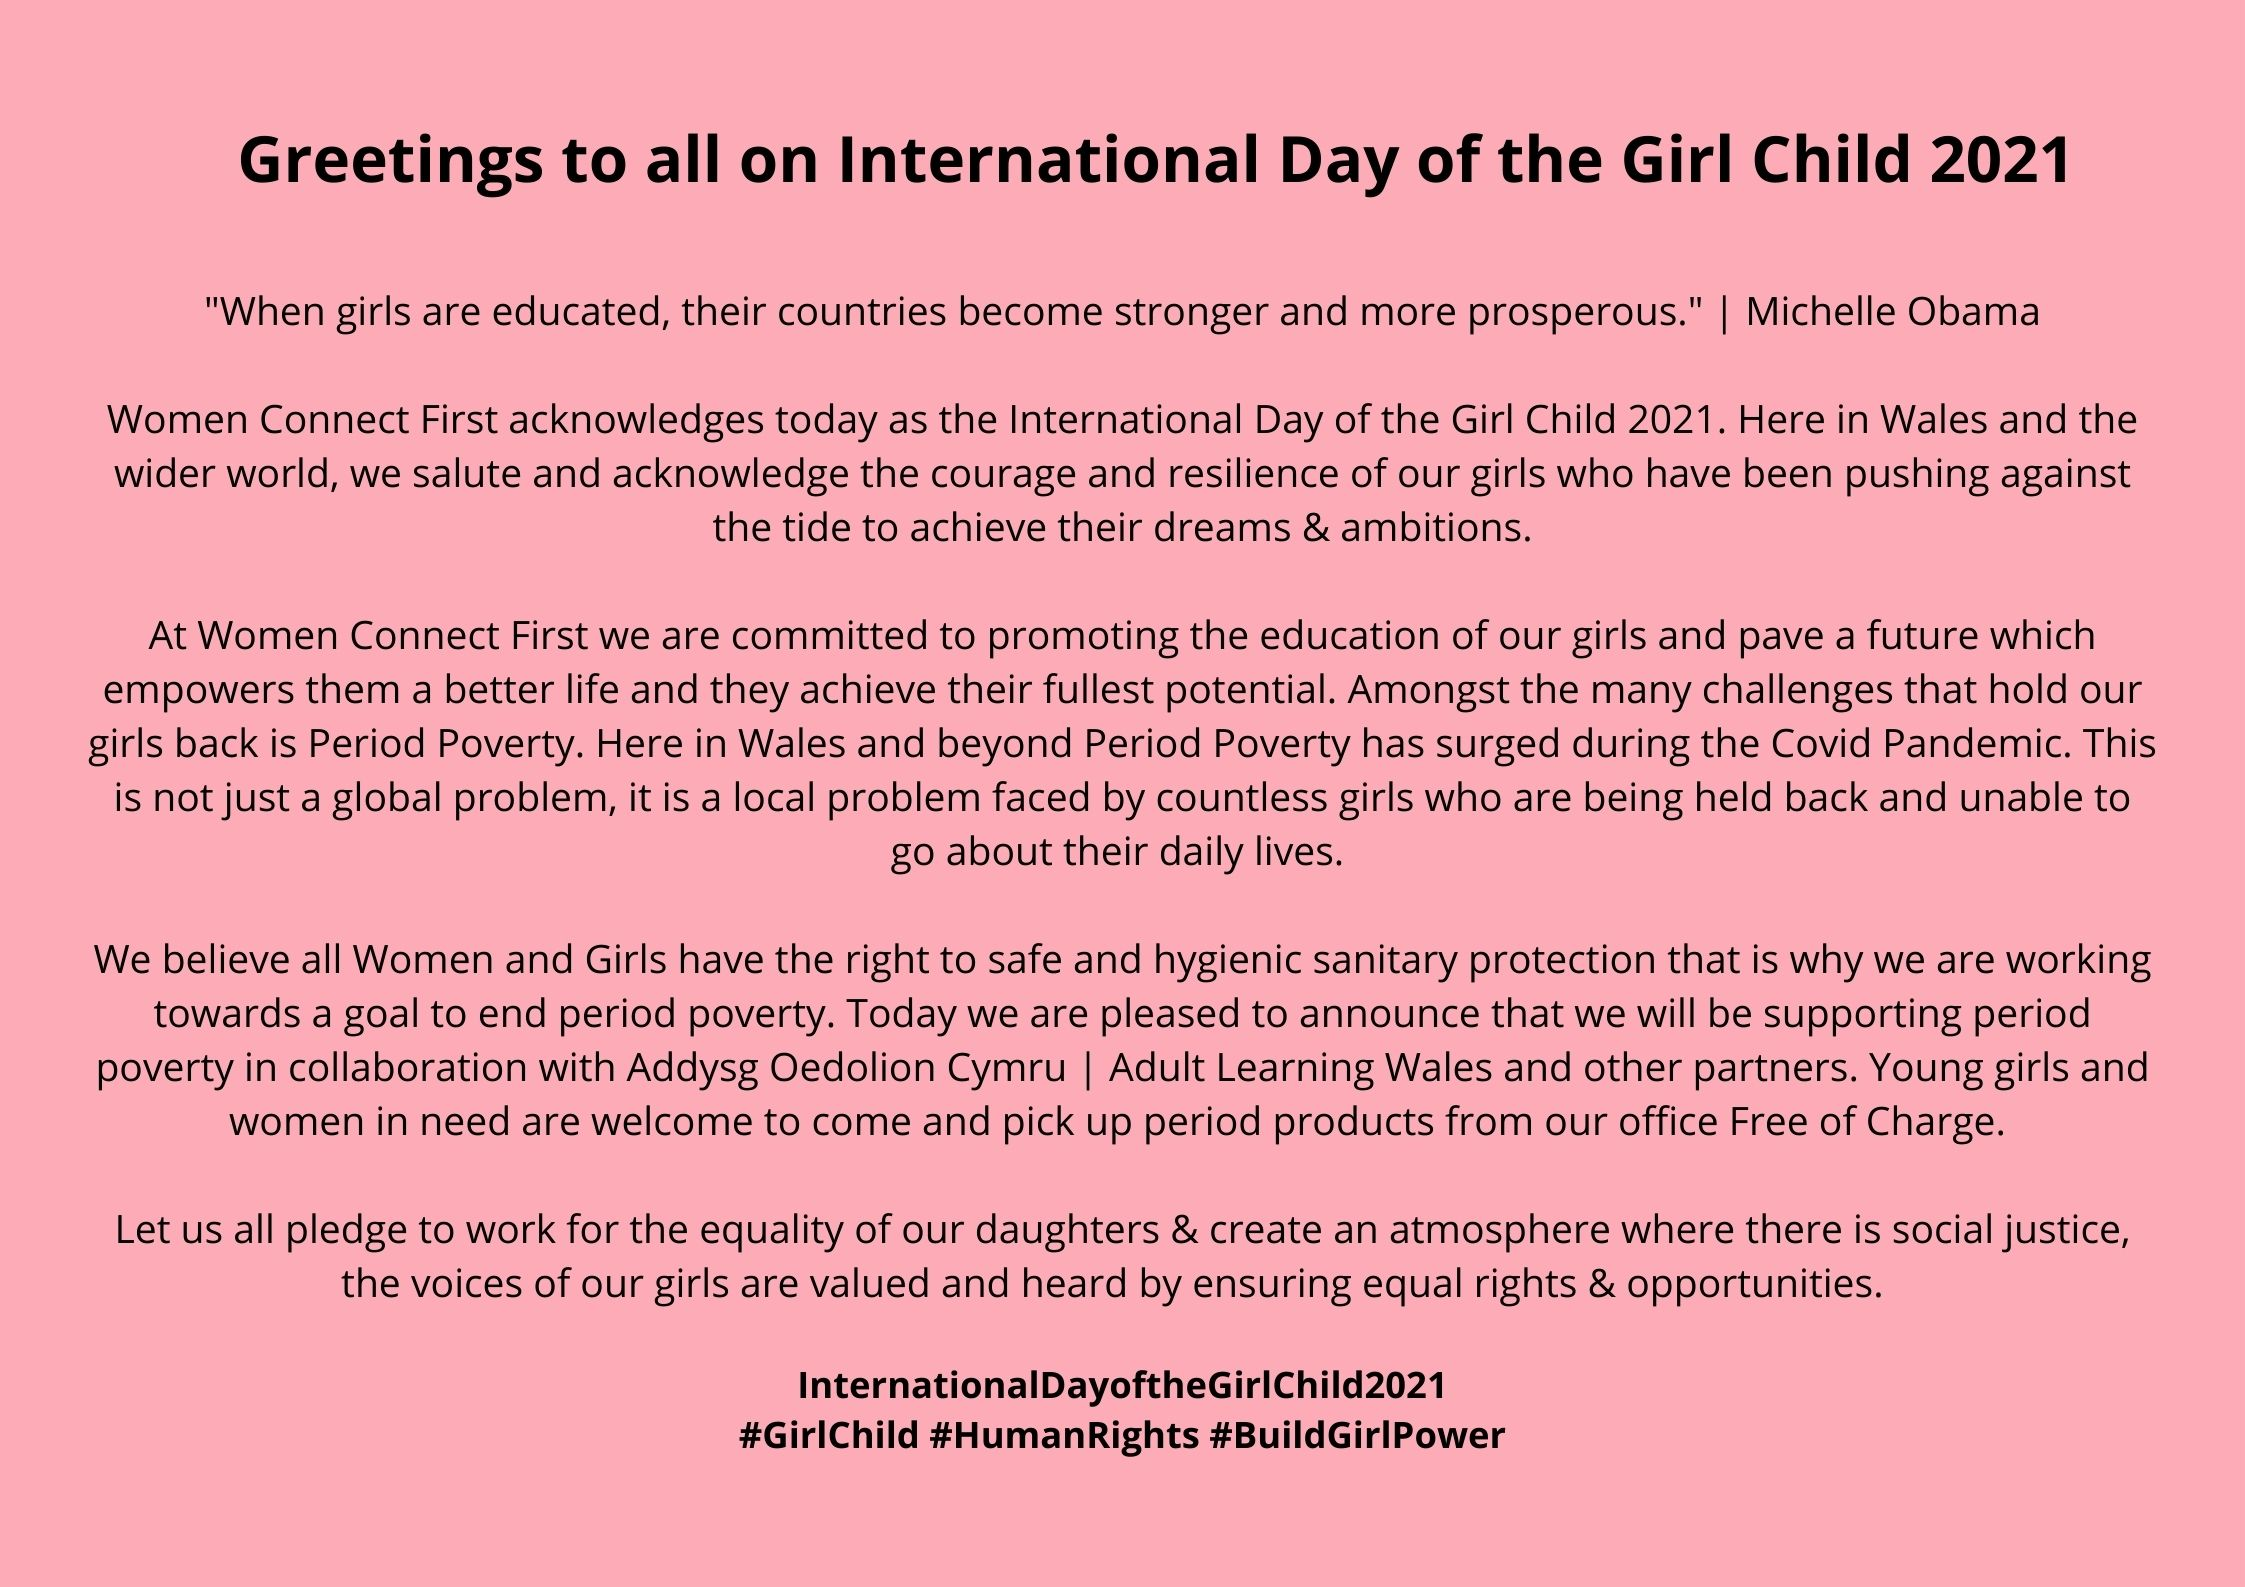 Greetings to all on International Day of the Girl Child 2021